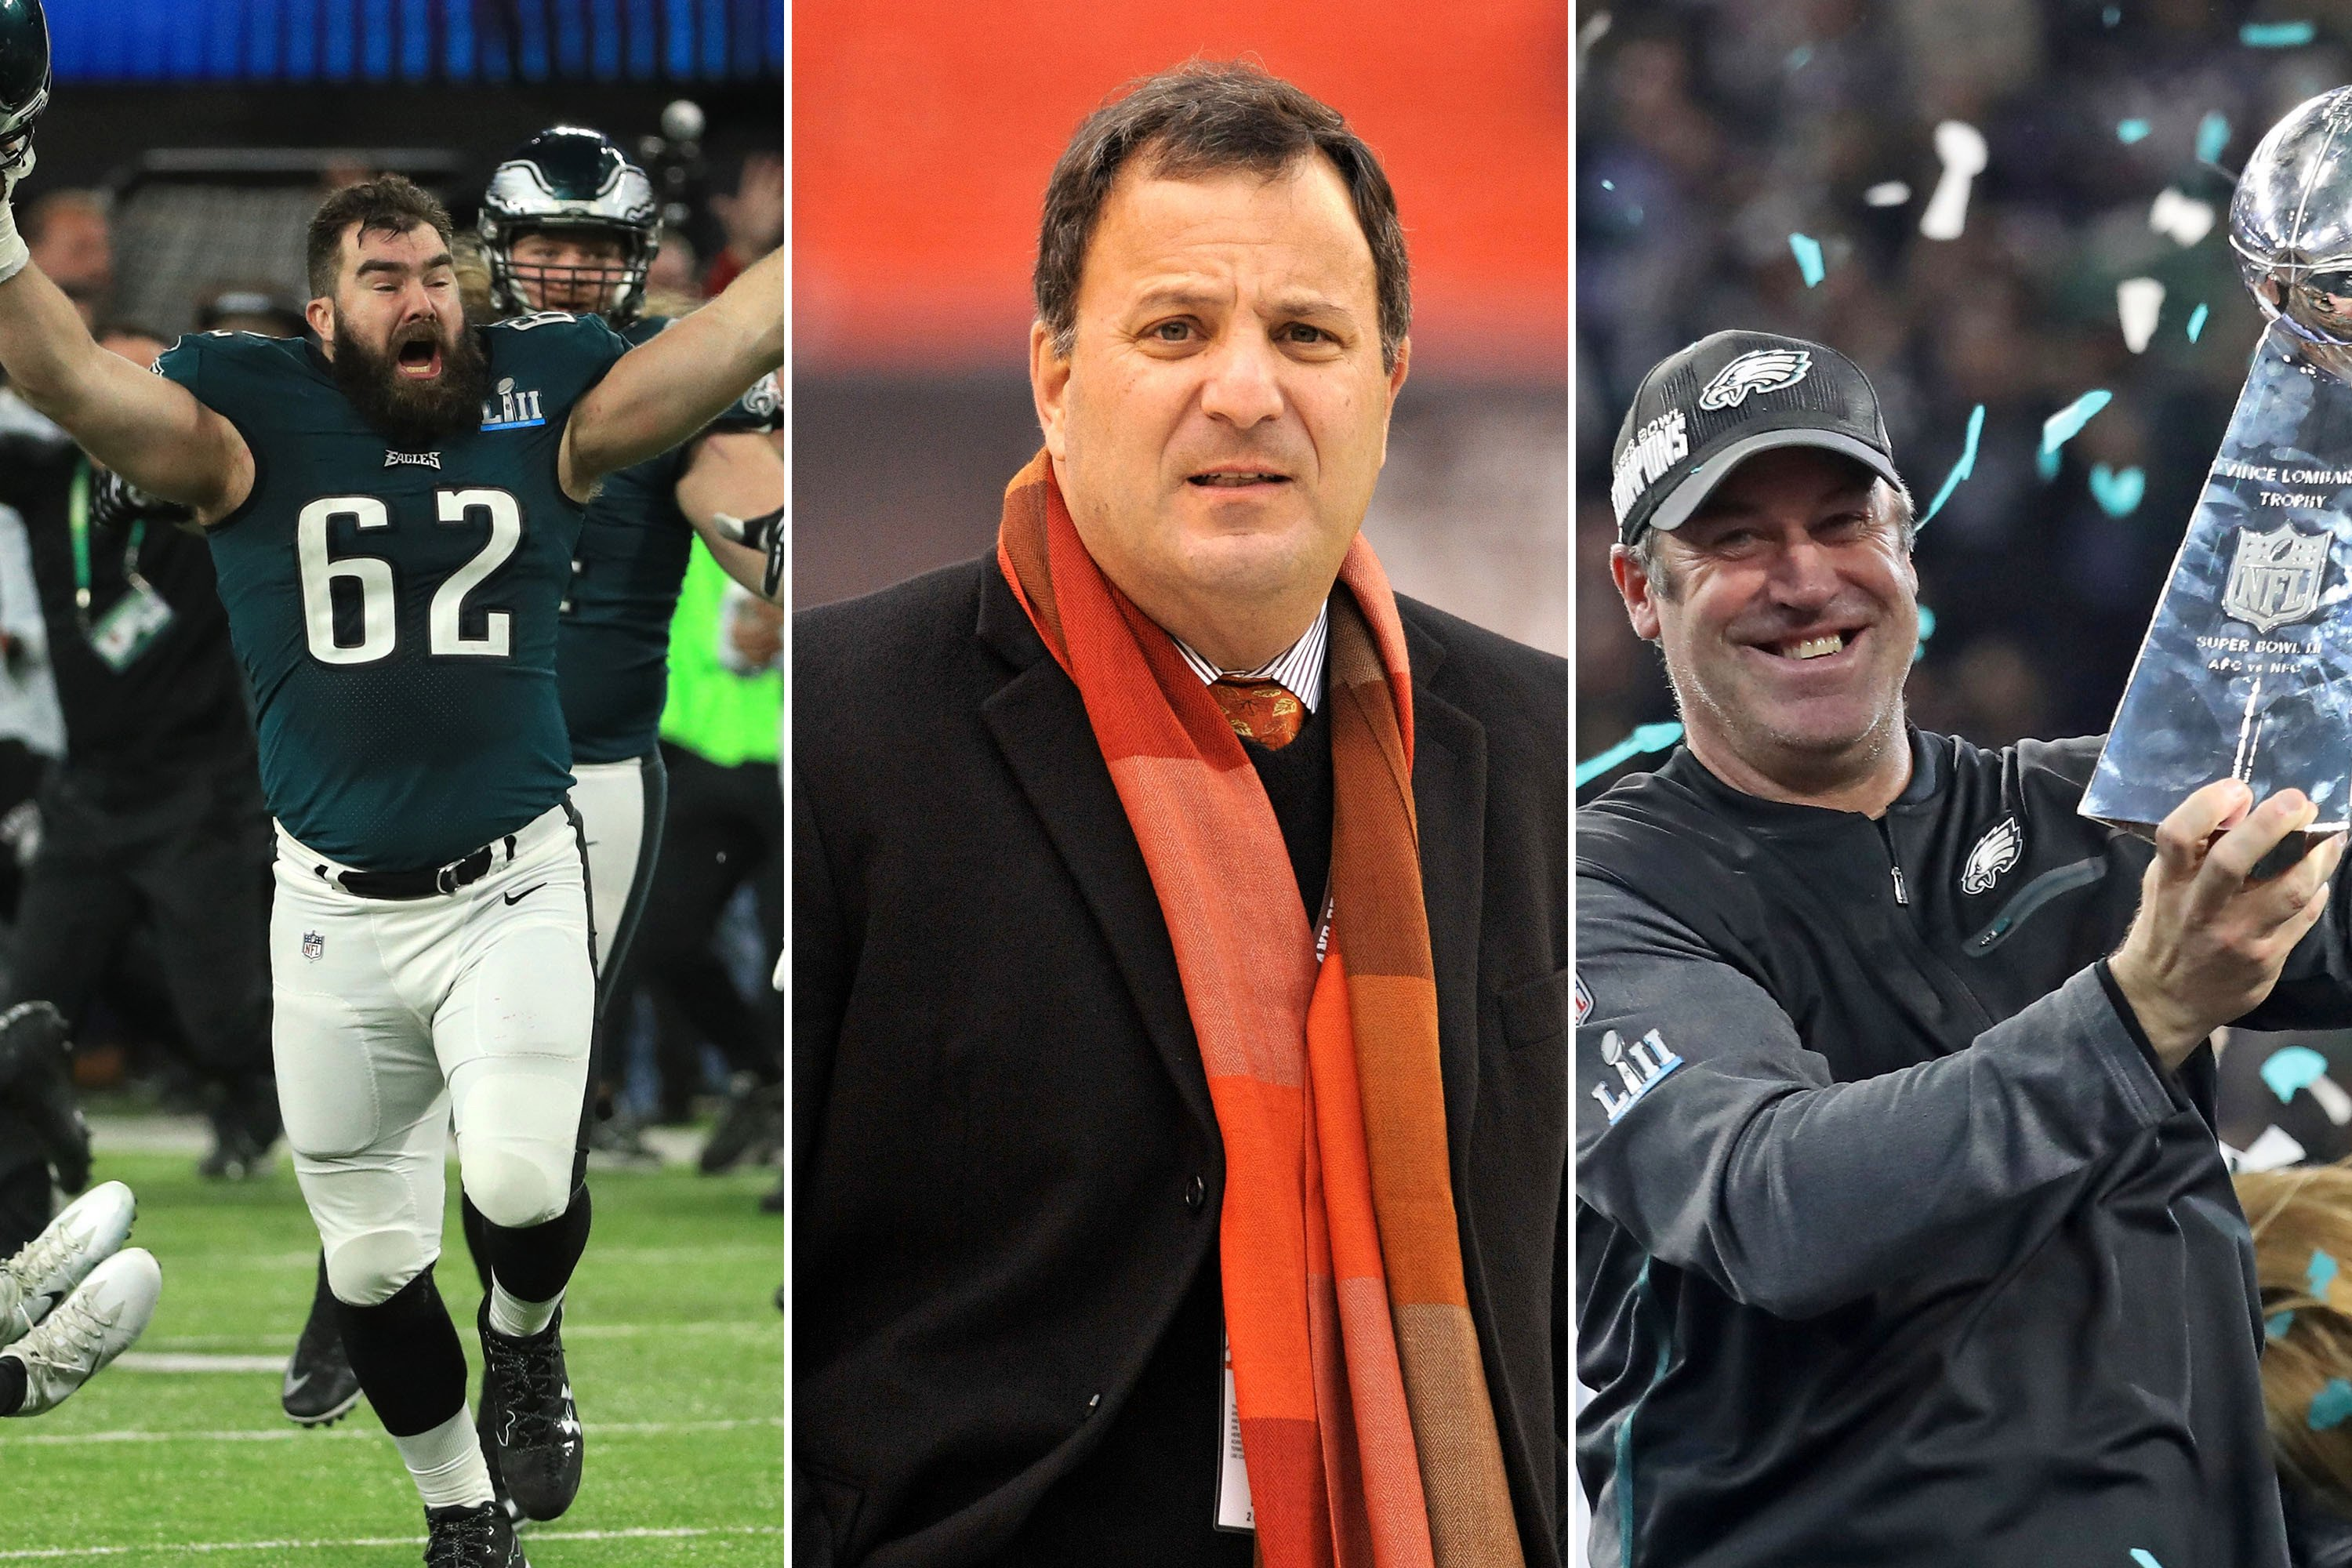 Wild Eagles player roasts columnist for Doug Pederson criticism